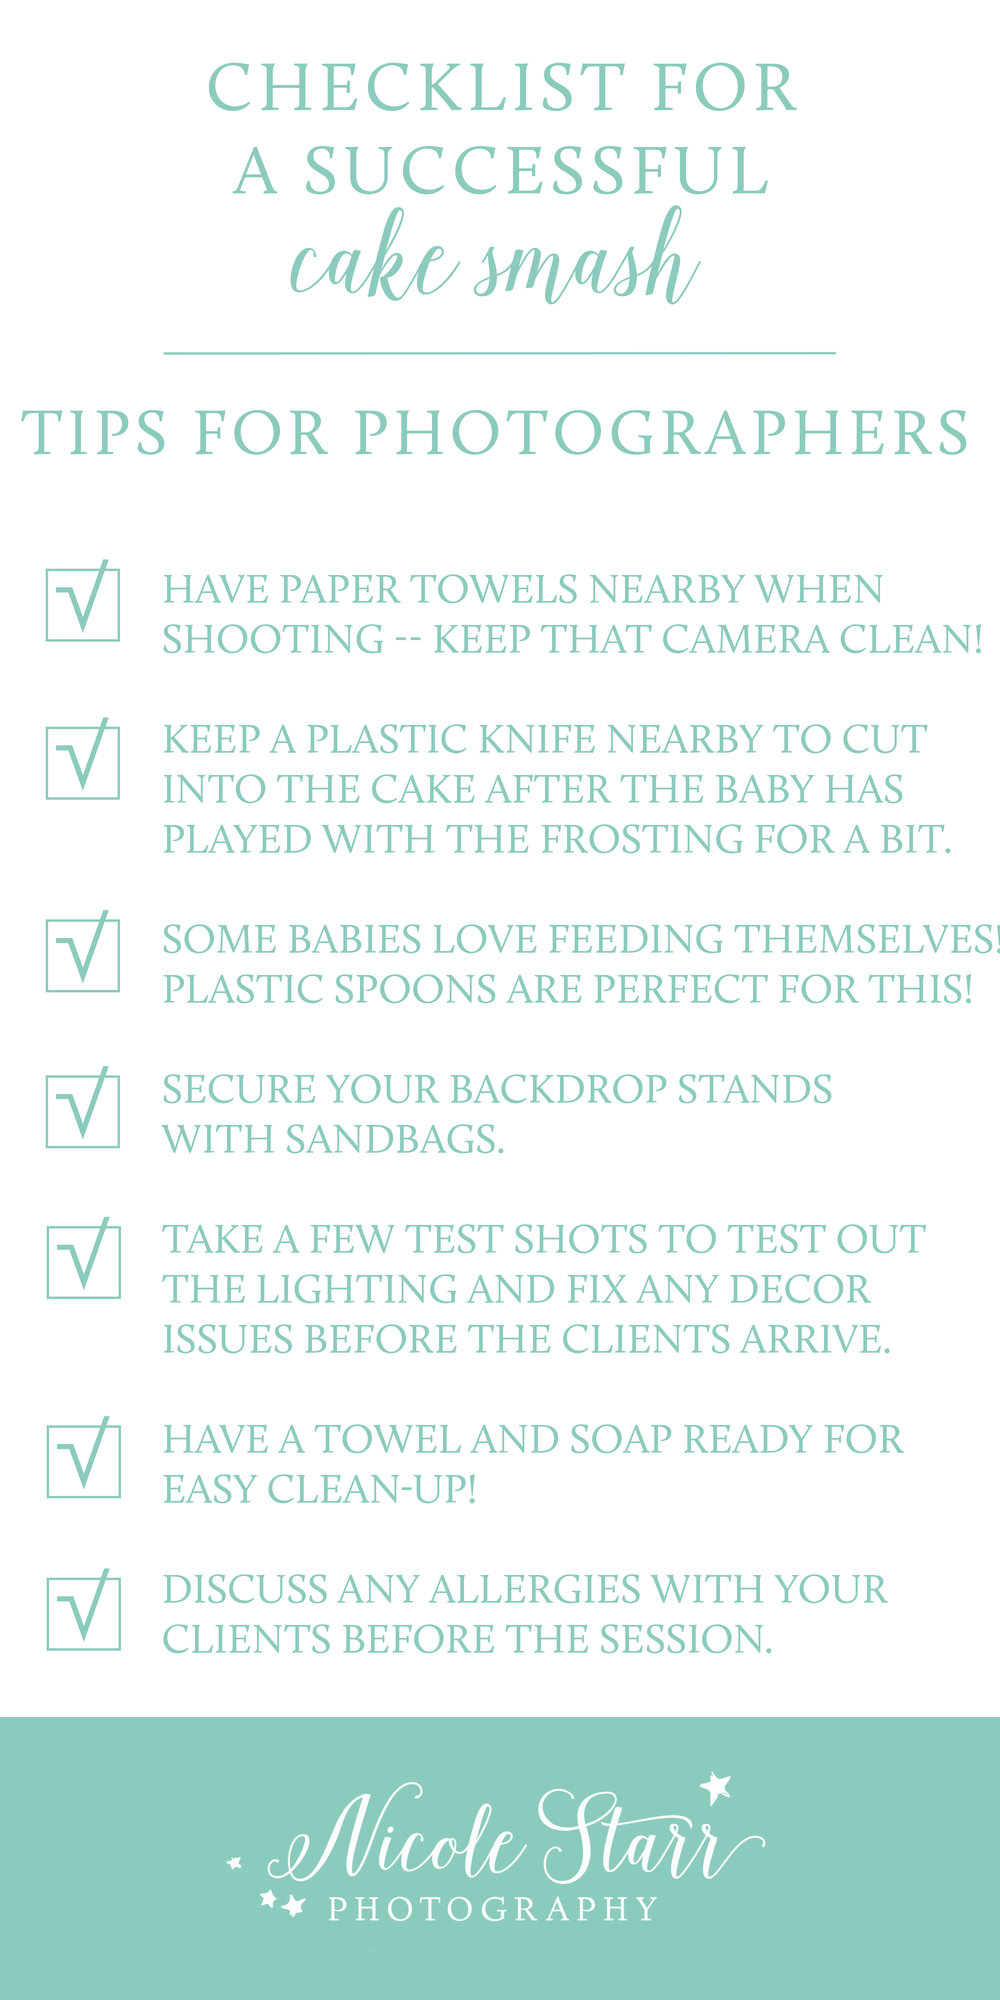 checklist for photographers to prepare for a cake smash photo shoot